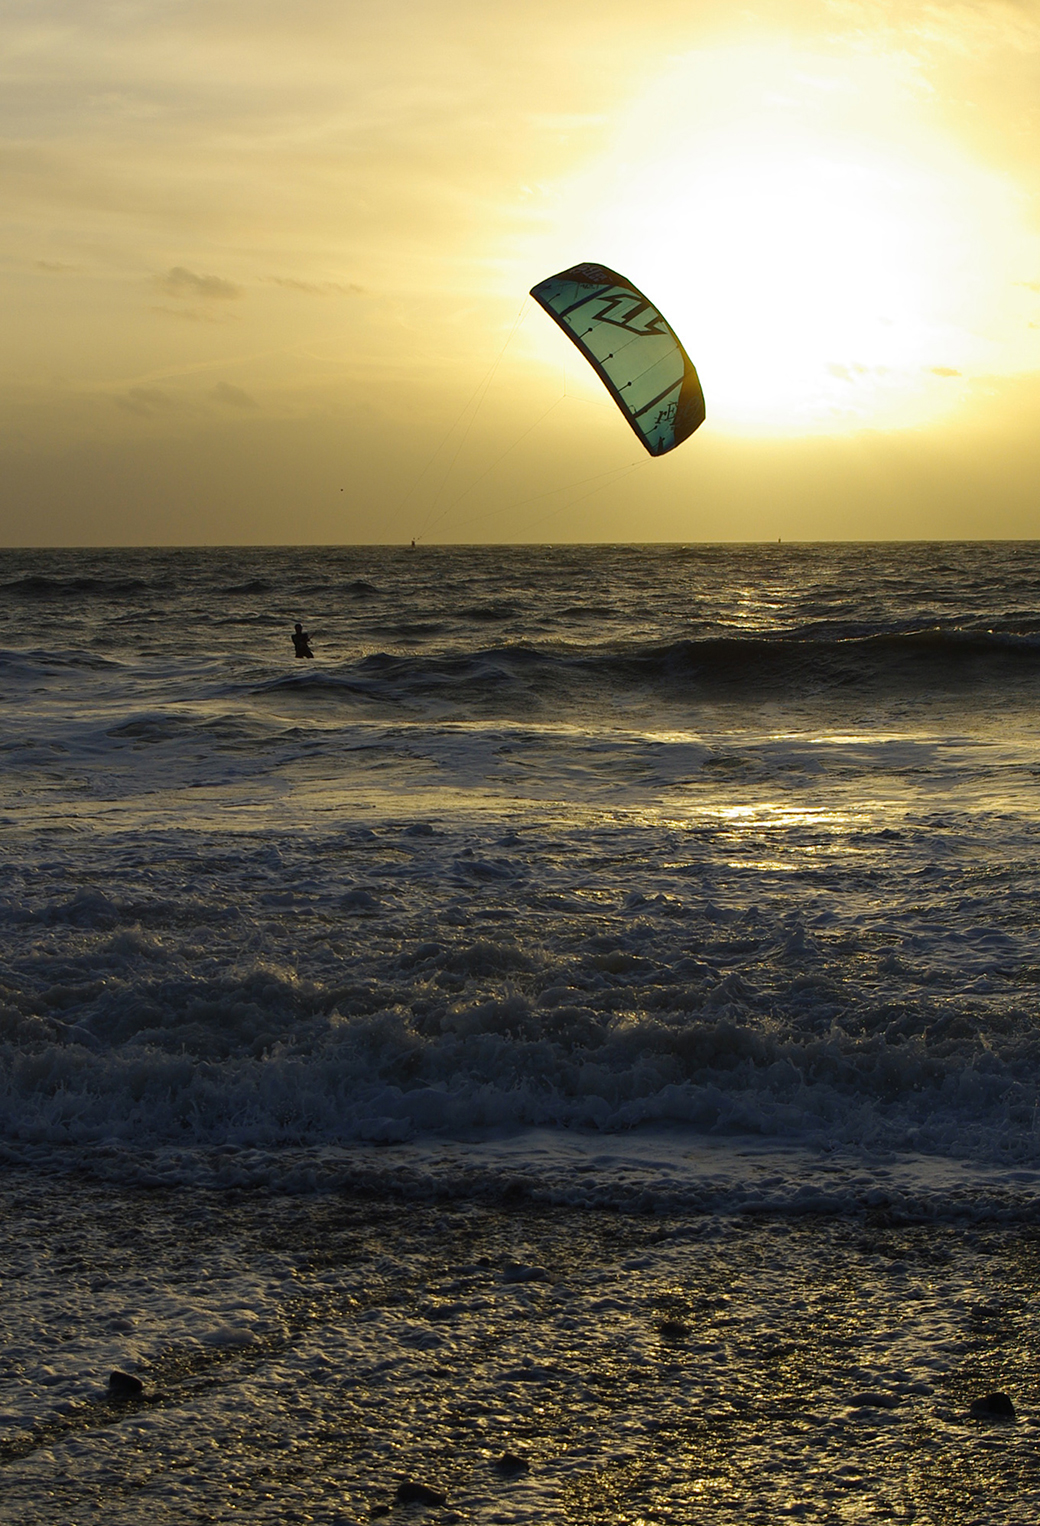 Kite Surf at Le Havre 3Wallpapers iPhone Parallax Kite Surf at Le Havre